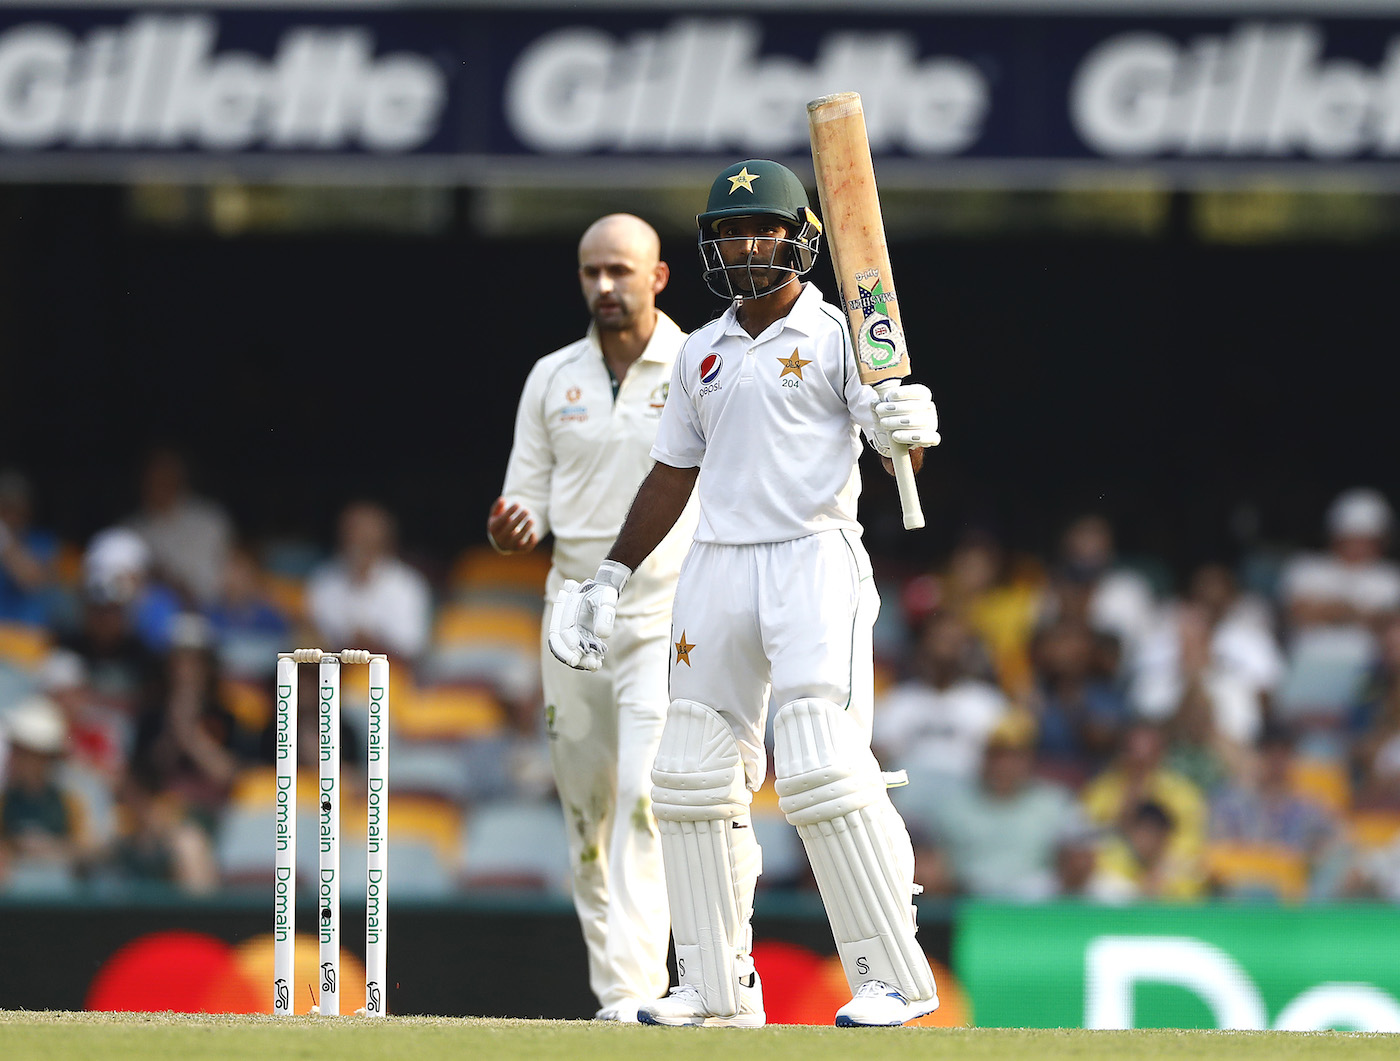 Pakistan bowled out for 240 on Day 1 of 1st Test against Australia